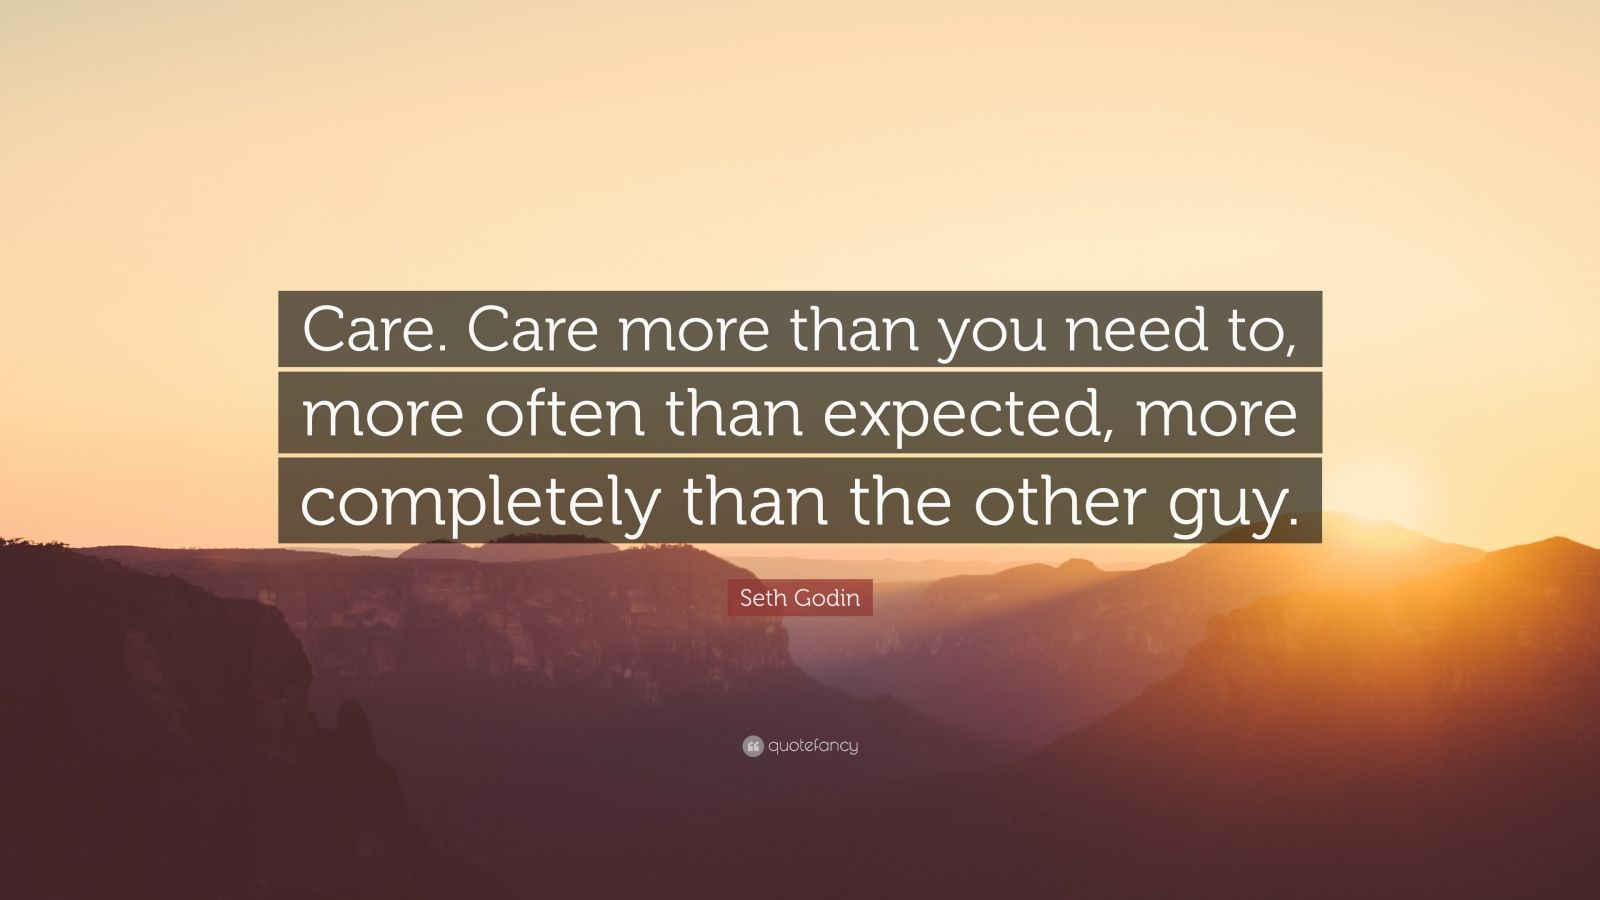 """Seth Godin Quote: """"Care. Care more than you need to, more often than expected, more completely than the other guy."""""""